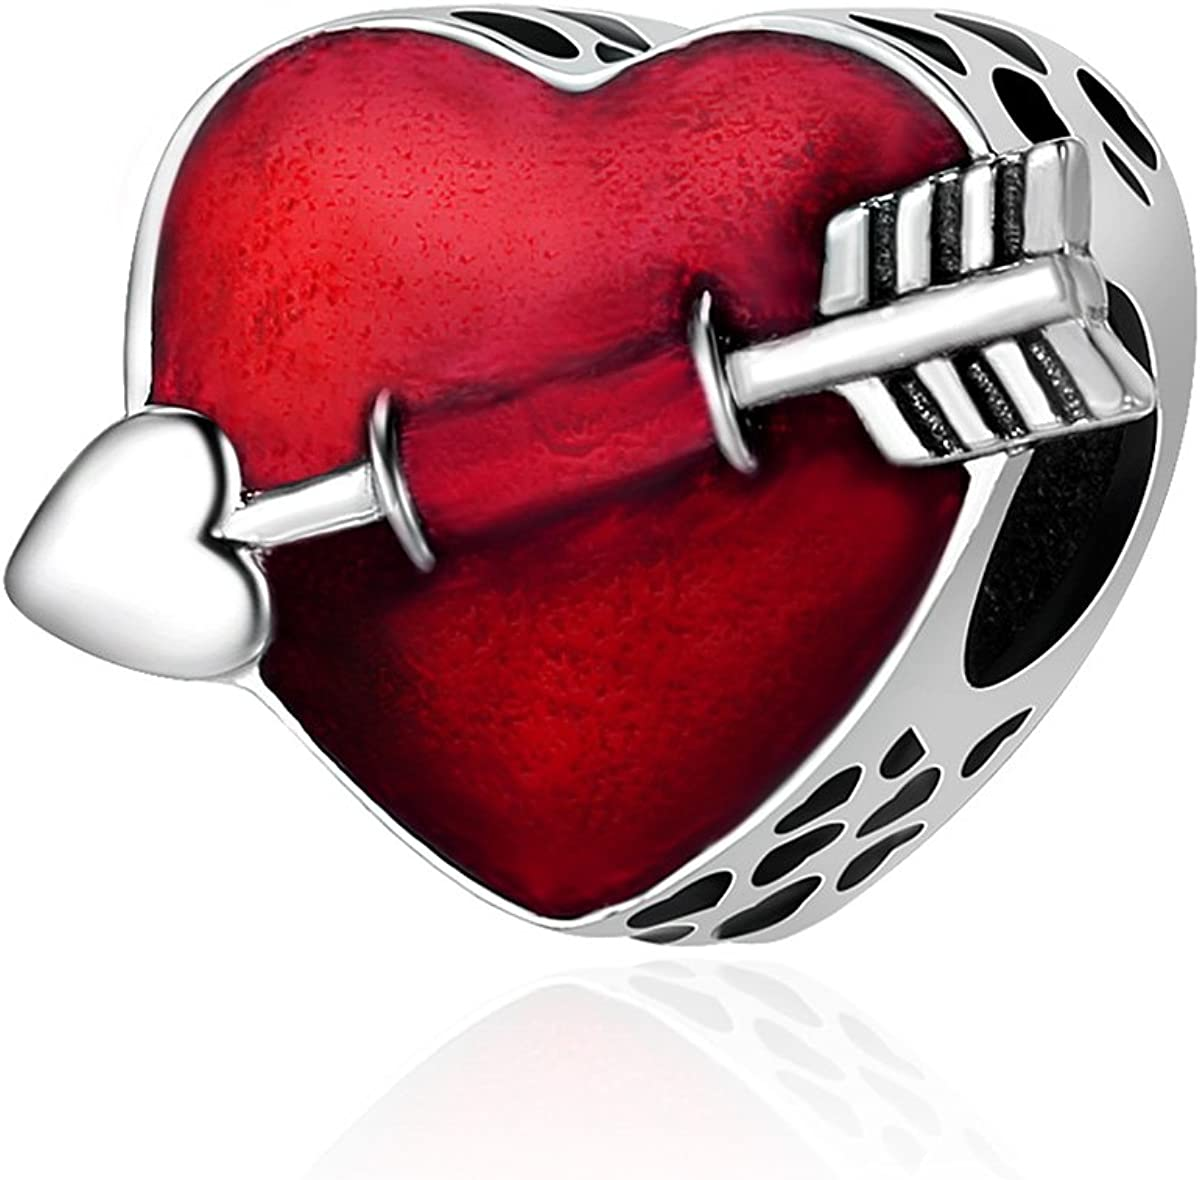 Soulove First Love Engrave Red Enamel Arrow Heart Charm 925 Sterling Silver Bead For Snake Chain Charm Bracelet